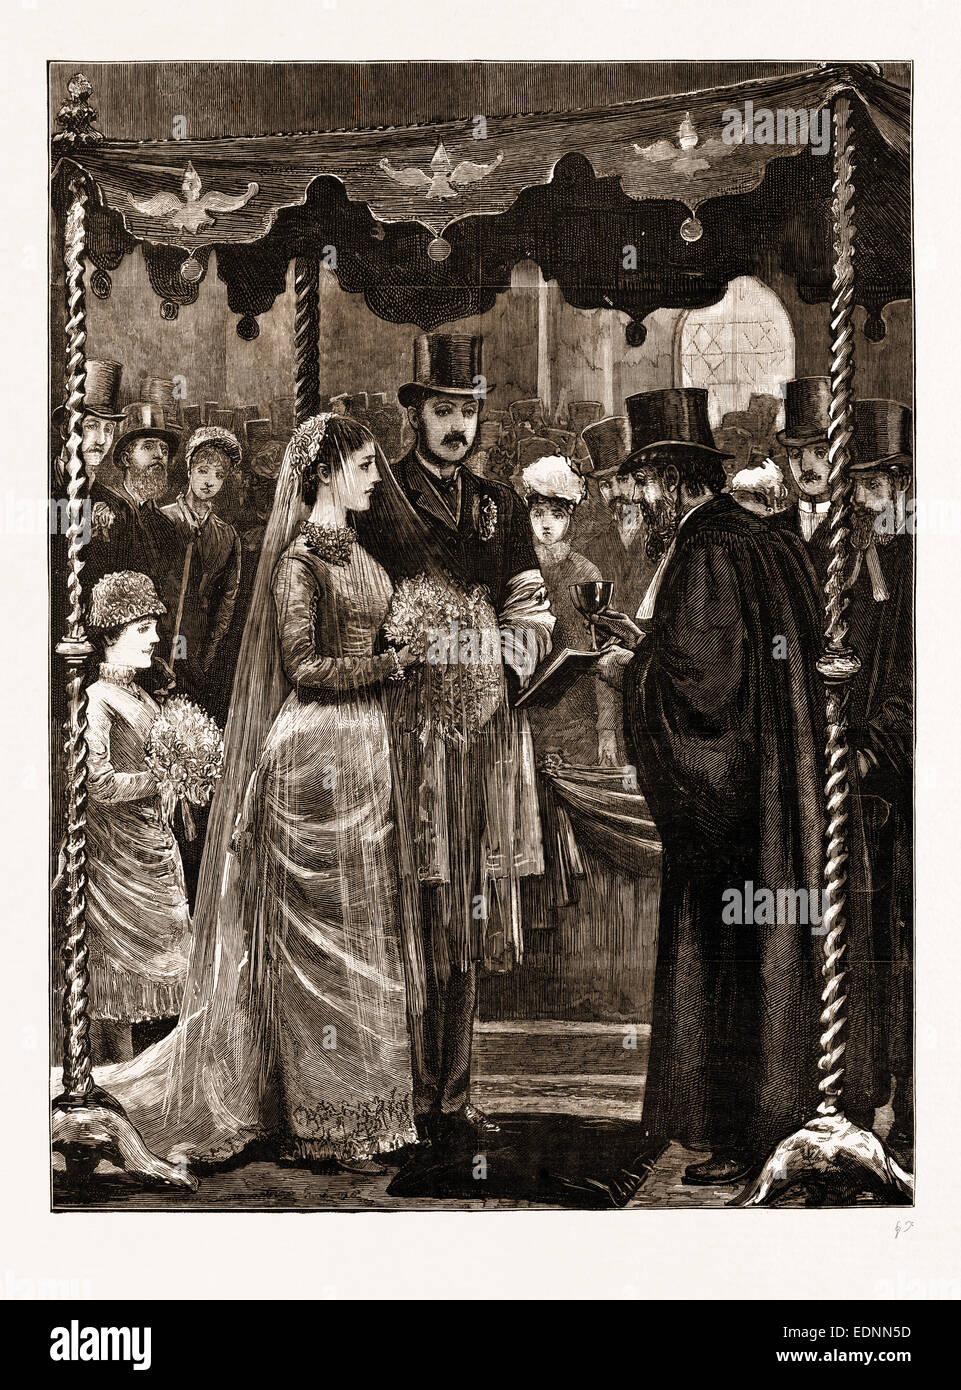 THE MARRIAGE OF MR. LEOPOLD DE ROTHSCHILD AND MDLLE. MARIE PERUGIA IN THE CENTRAL SYNAGOGUE, GREAT PORTLAND STREET, - Stock Image